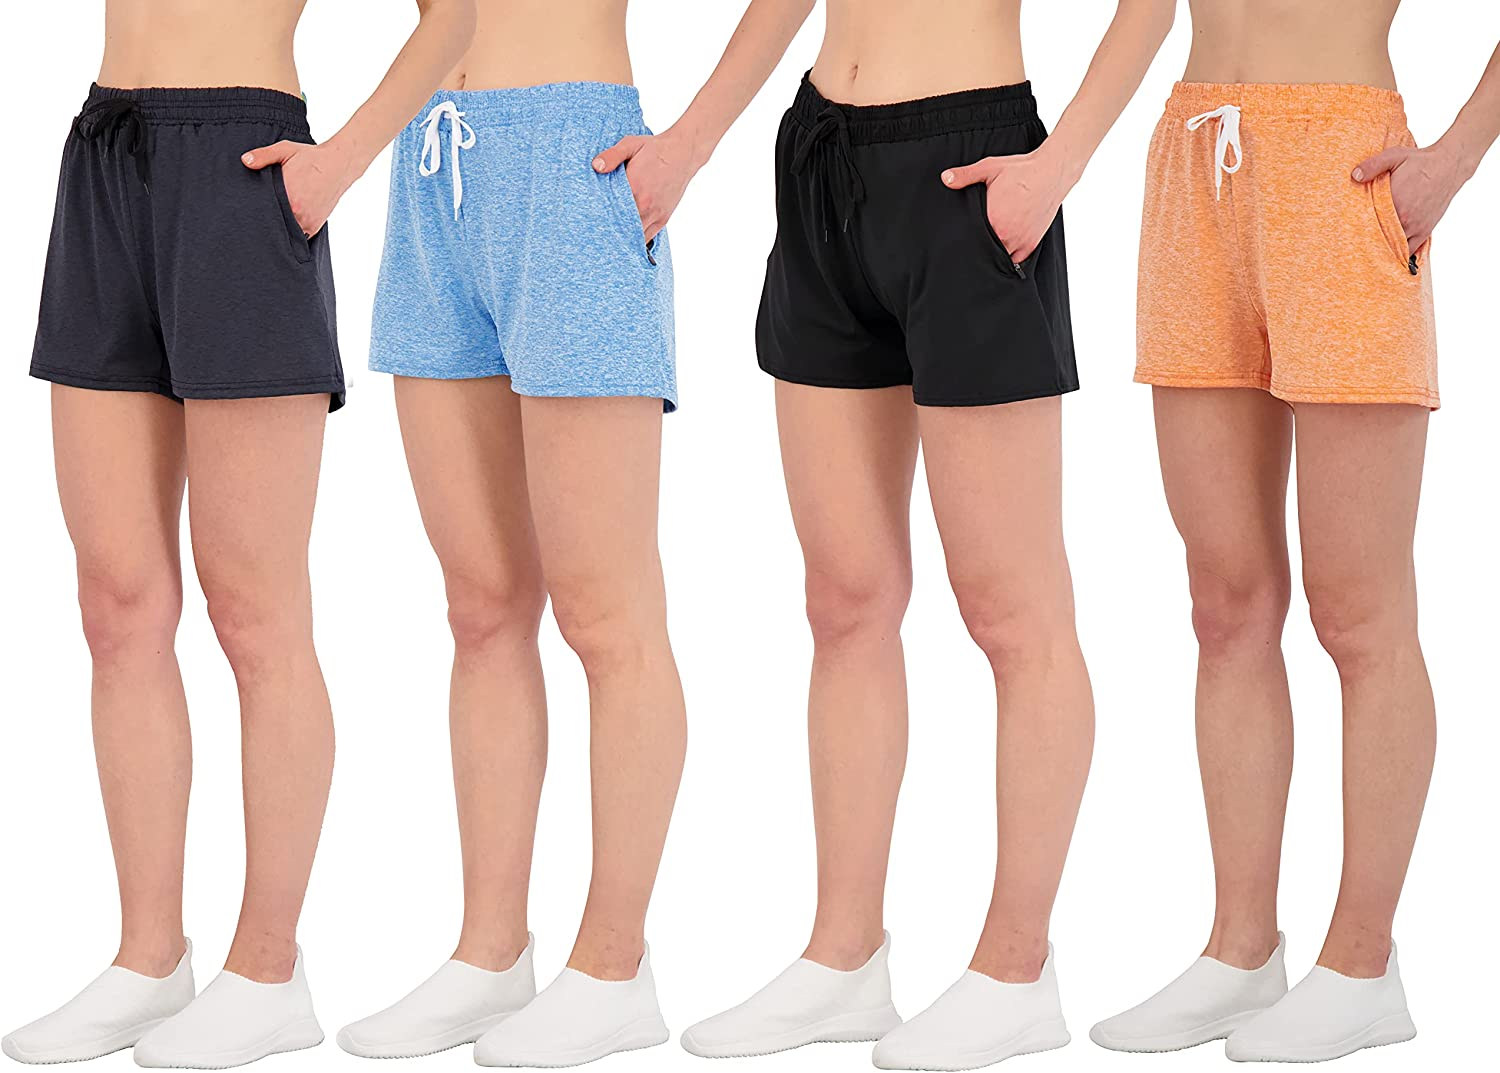 4 Pack: Womens Active Athletic Performance Dry-Fit Shorts with Zipper Pockets